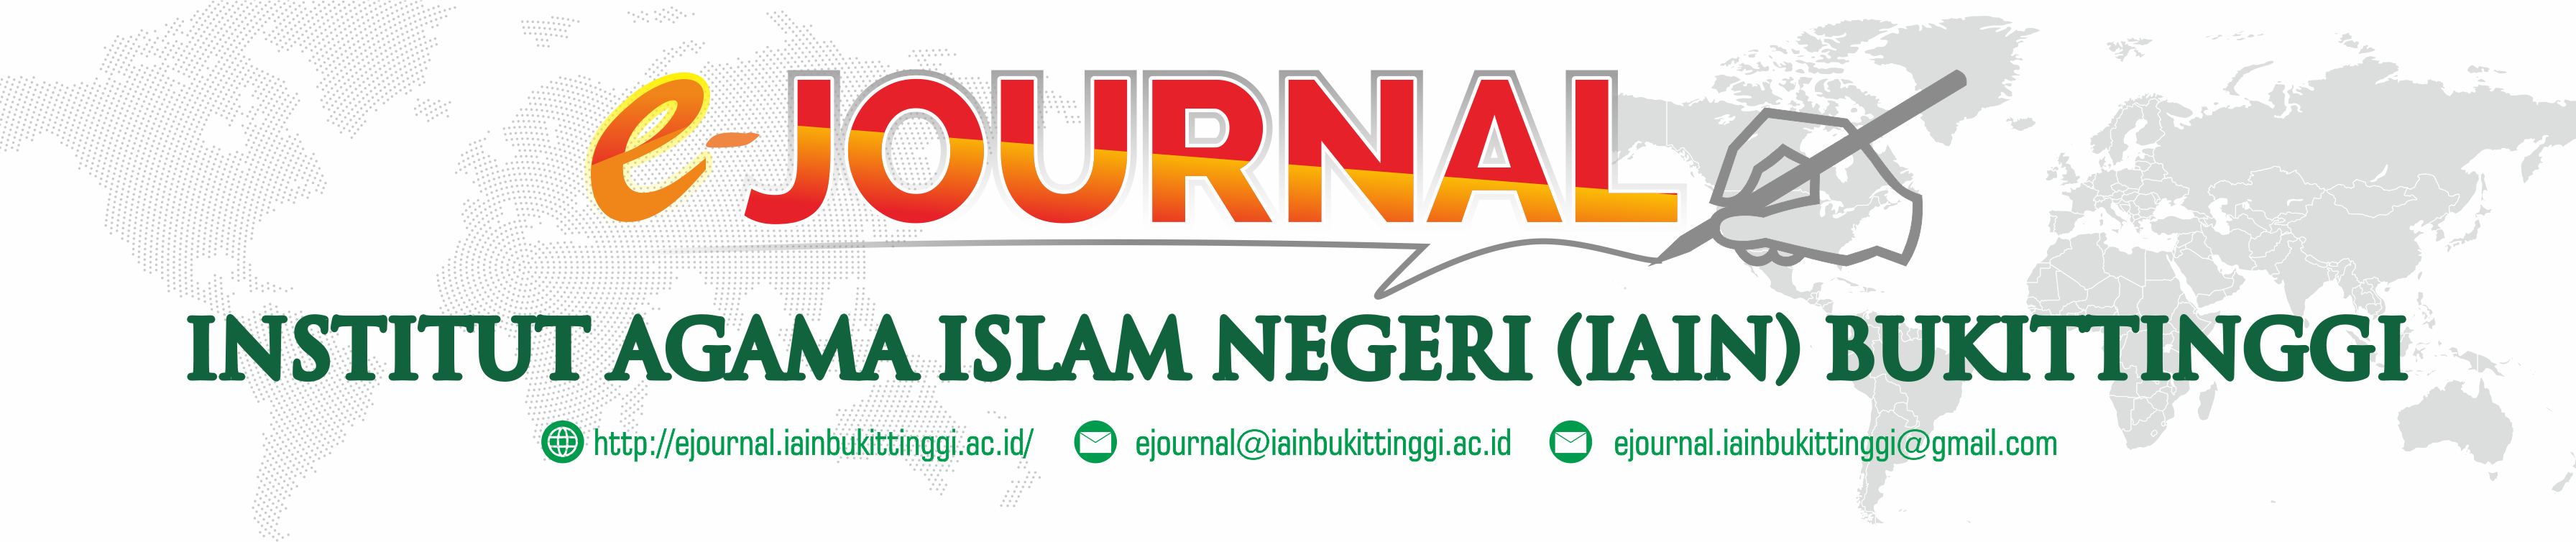 e-Journal IAIN Bukittinggi